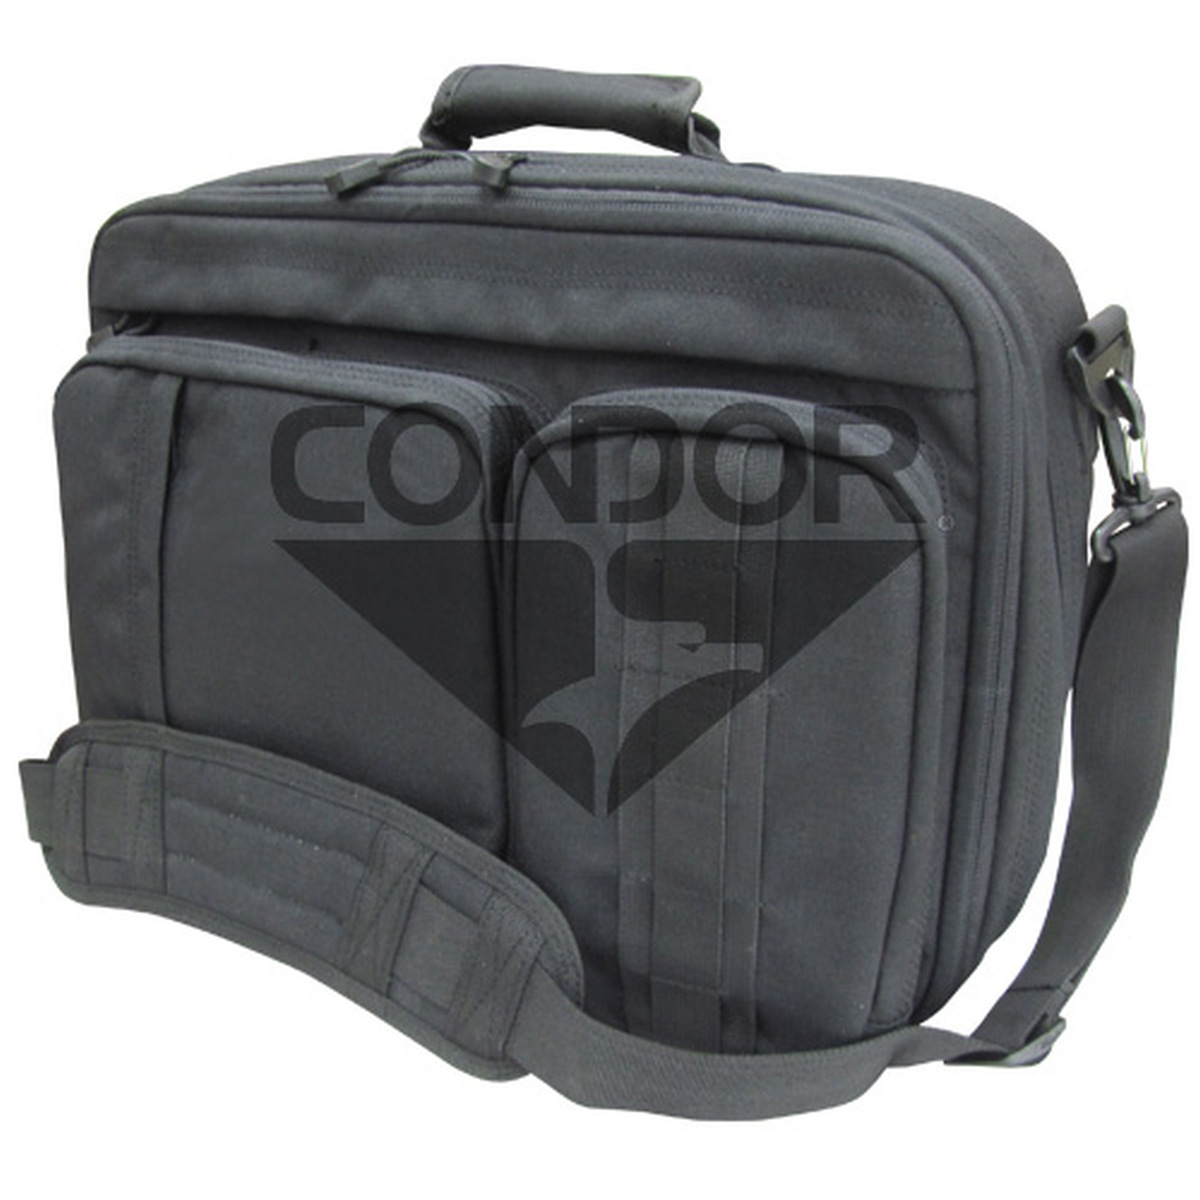 3 Way Laptop Case-CondorOutdoor